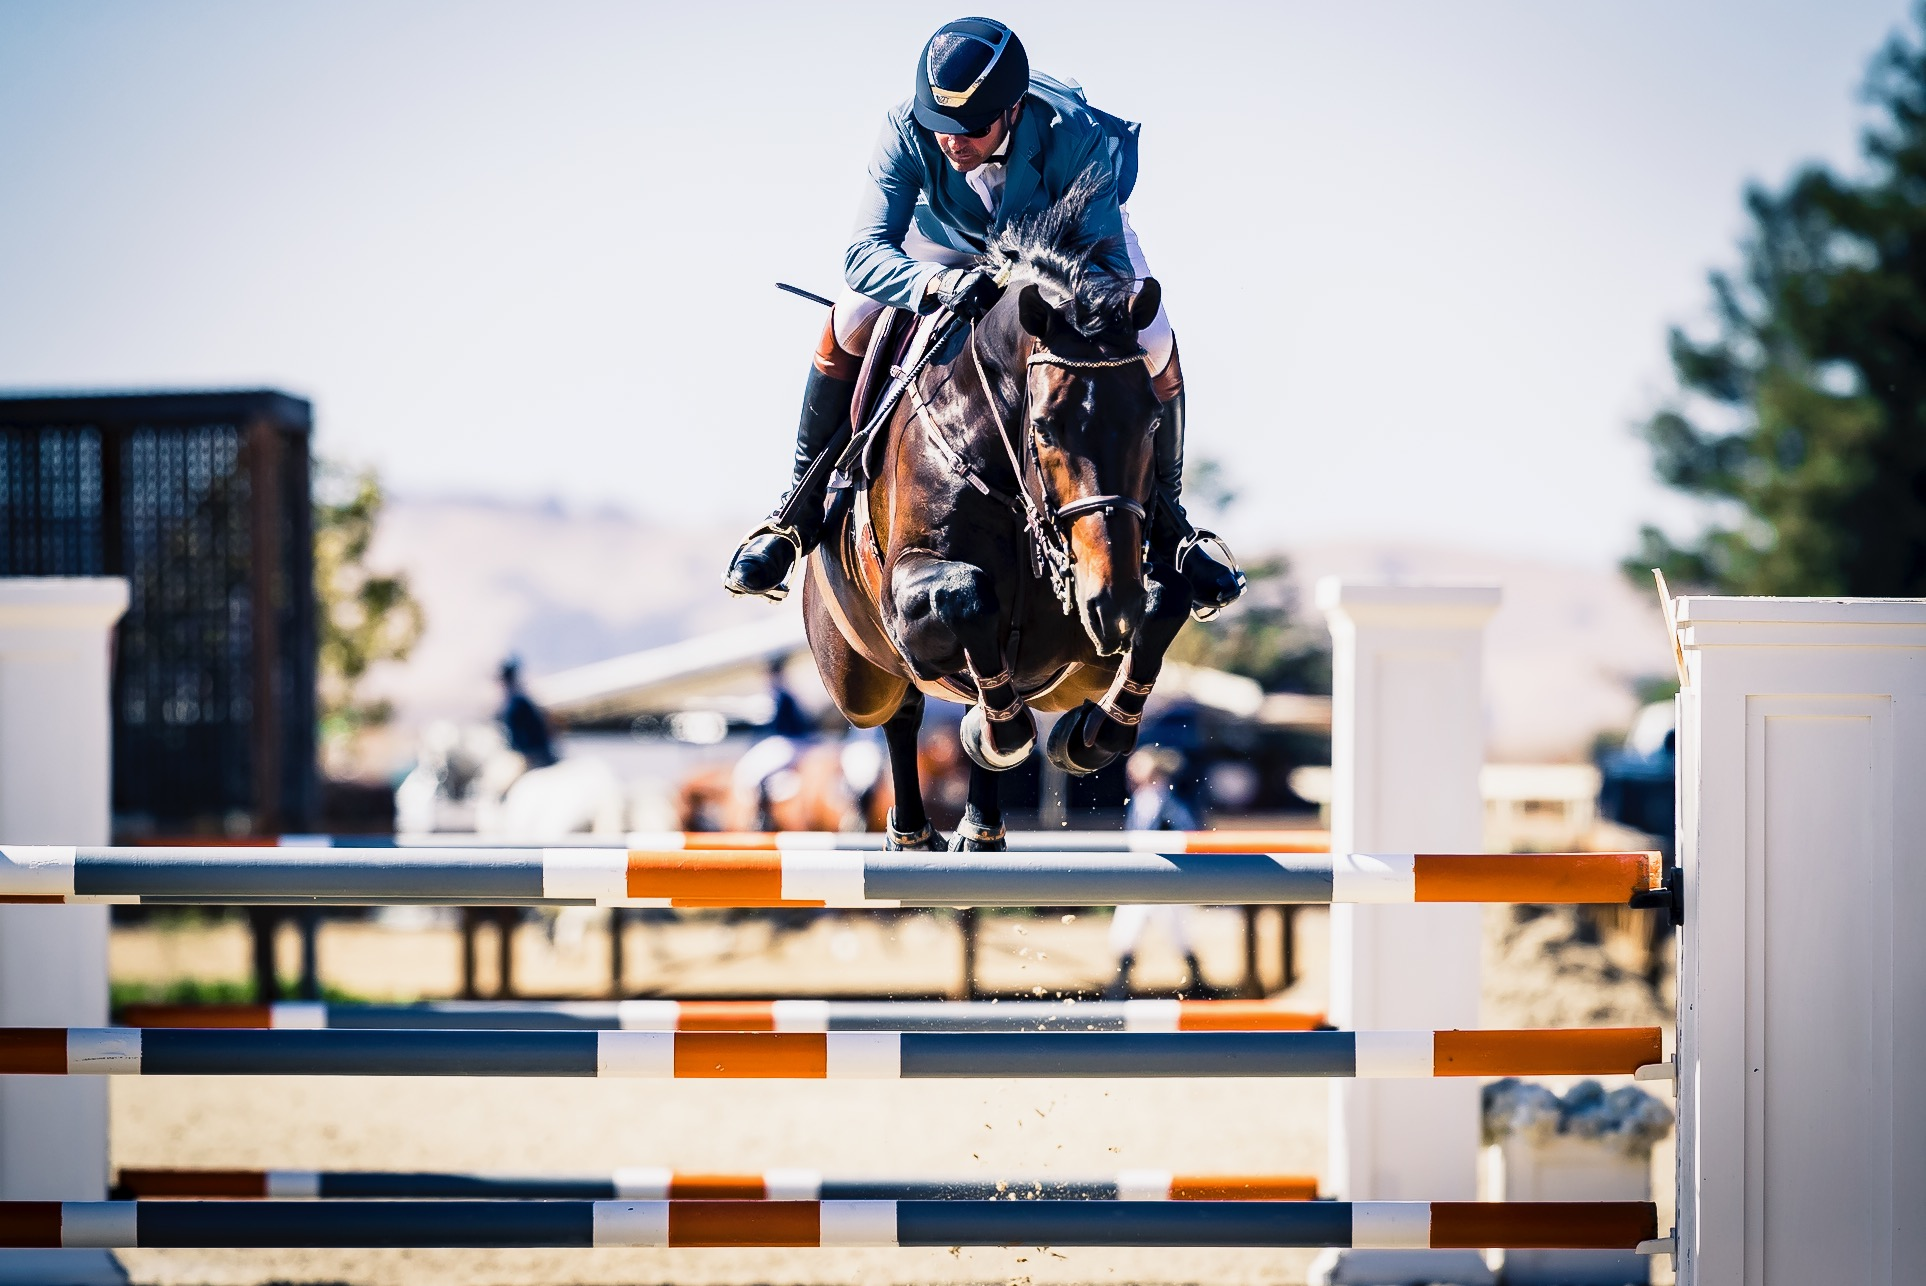 Mariano is on Edesa's Wendeschon Z. 15k welcome prix at Sonoma.